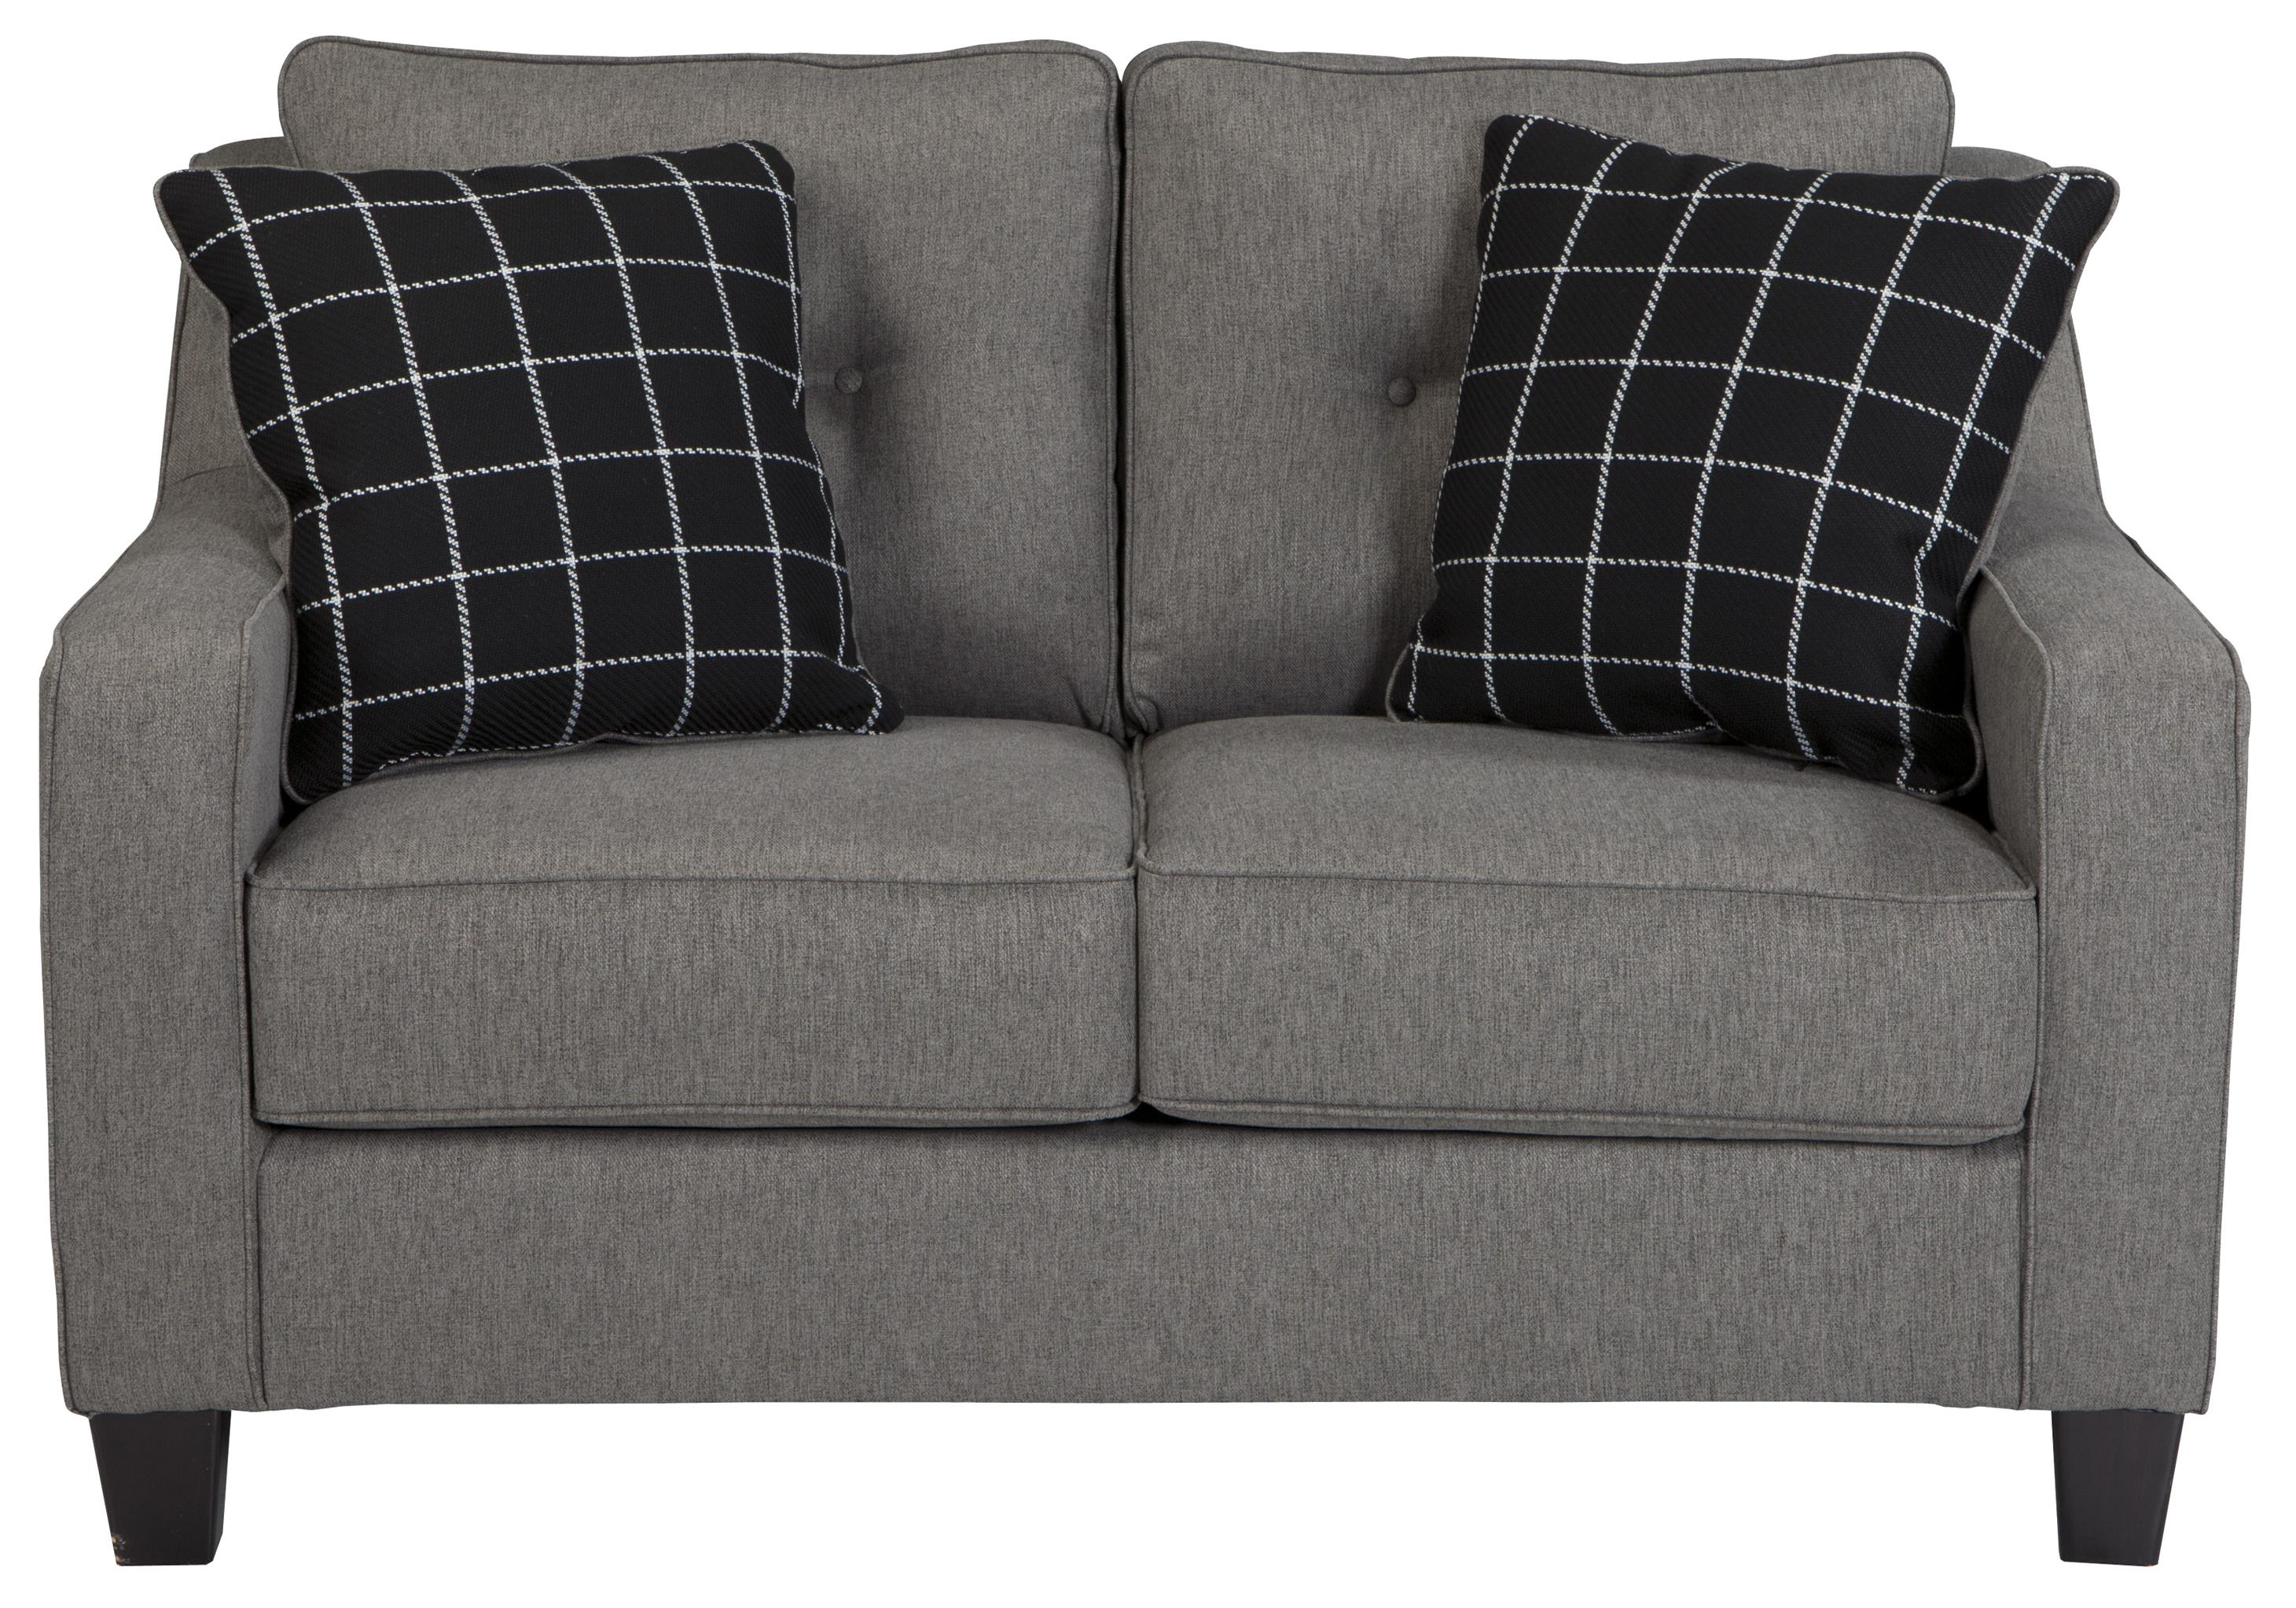 Benchcraft Brindon Loveseat - Item Number: 5390135